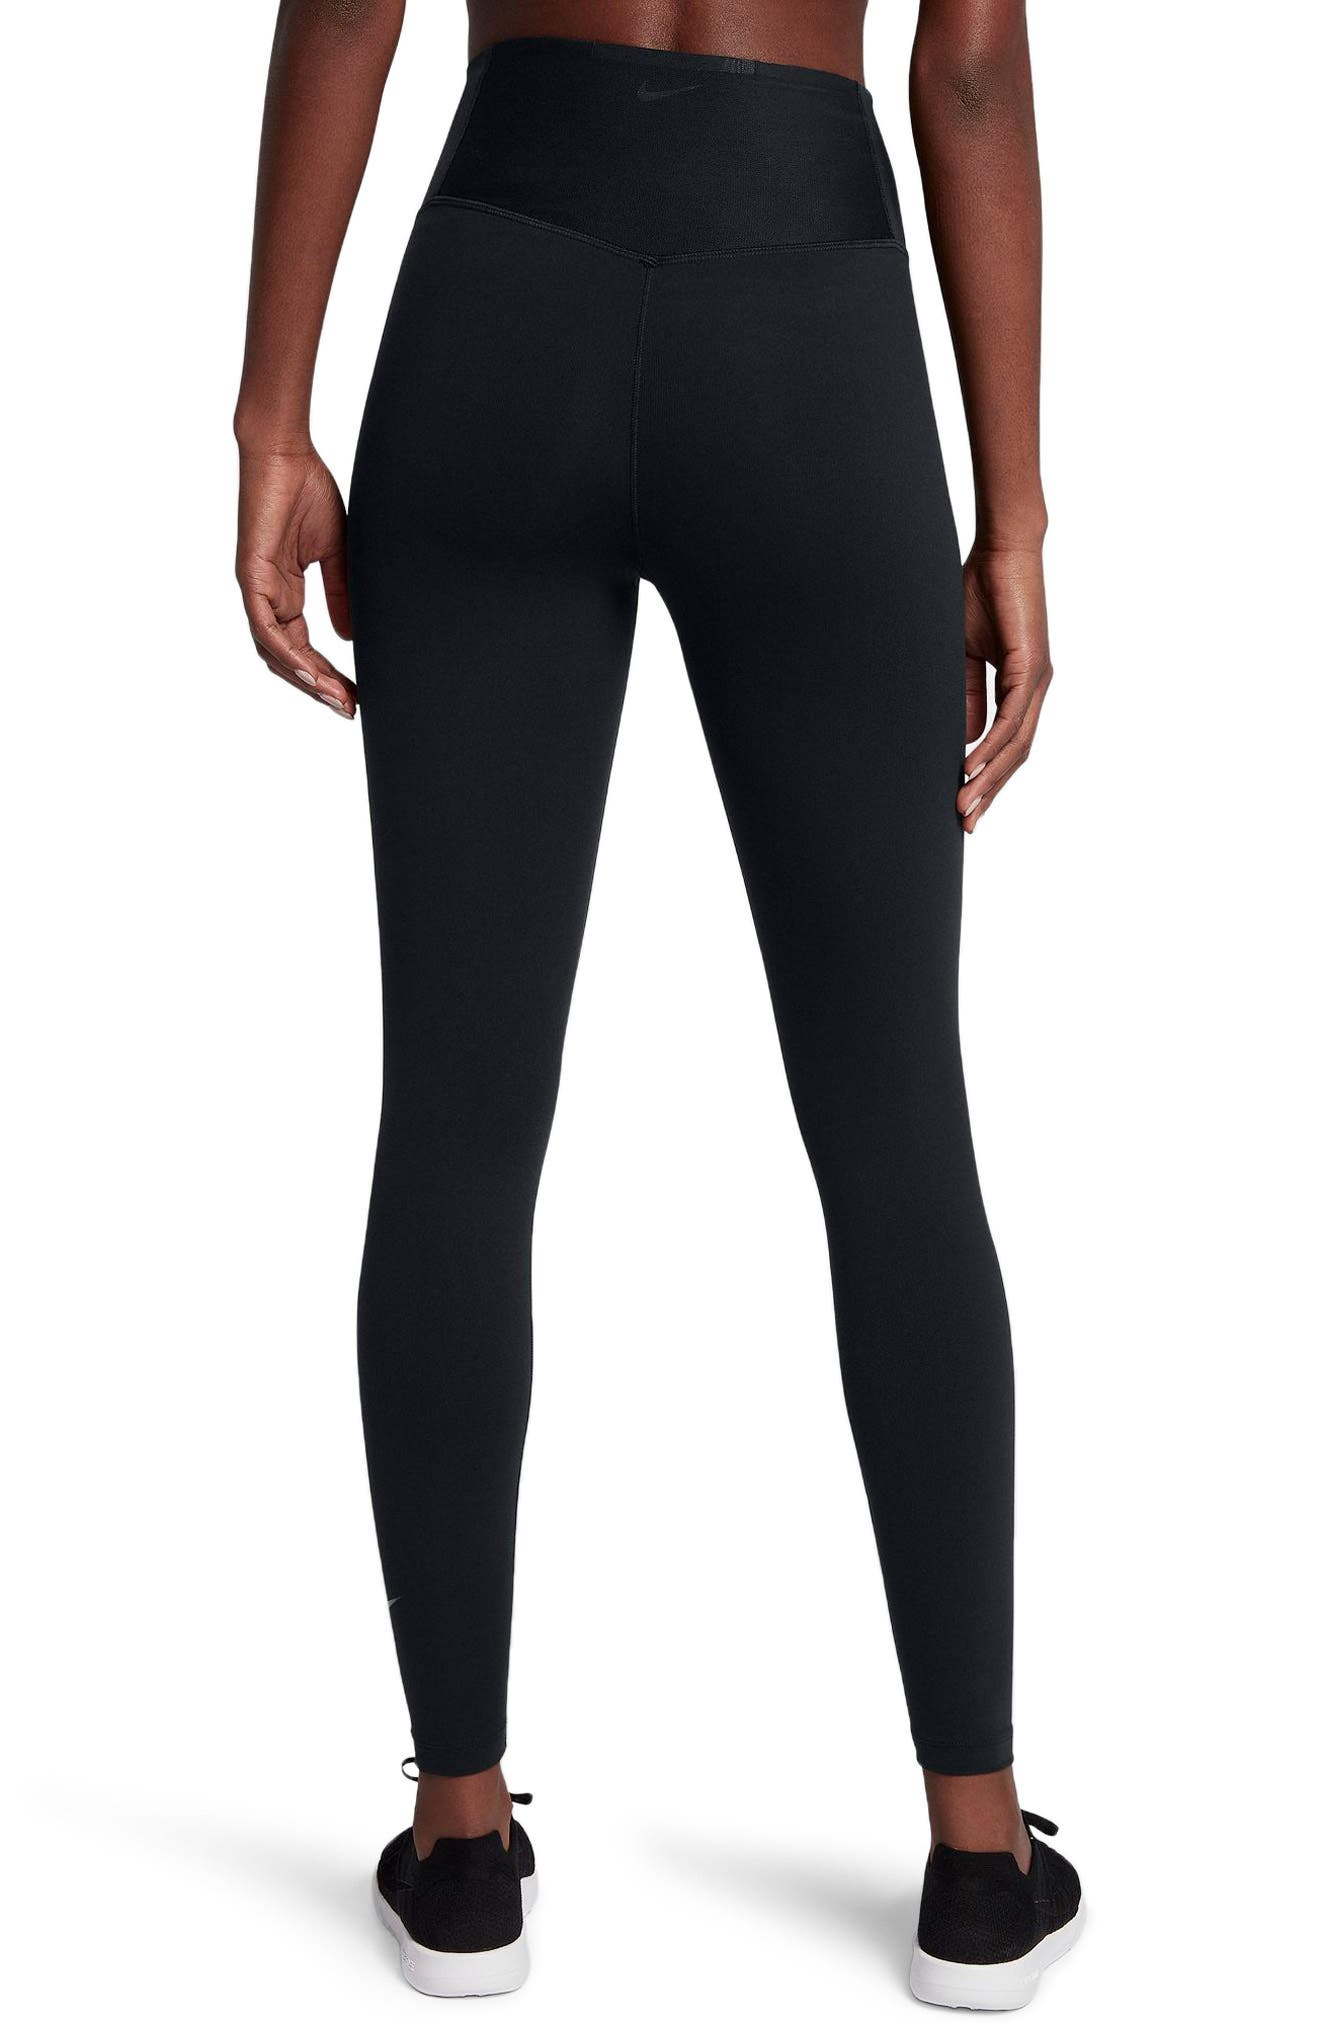 Sculpt Lux Training Tights,                             Alternate thumbnail 2, color,                             BLACK/ CLEAR